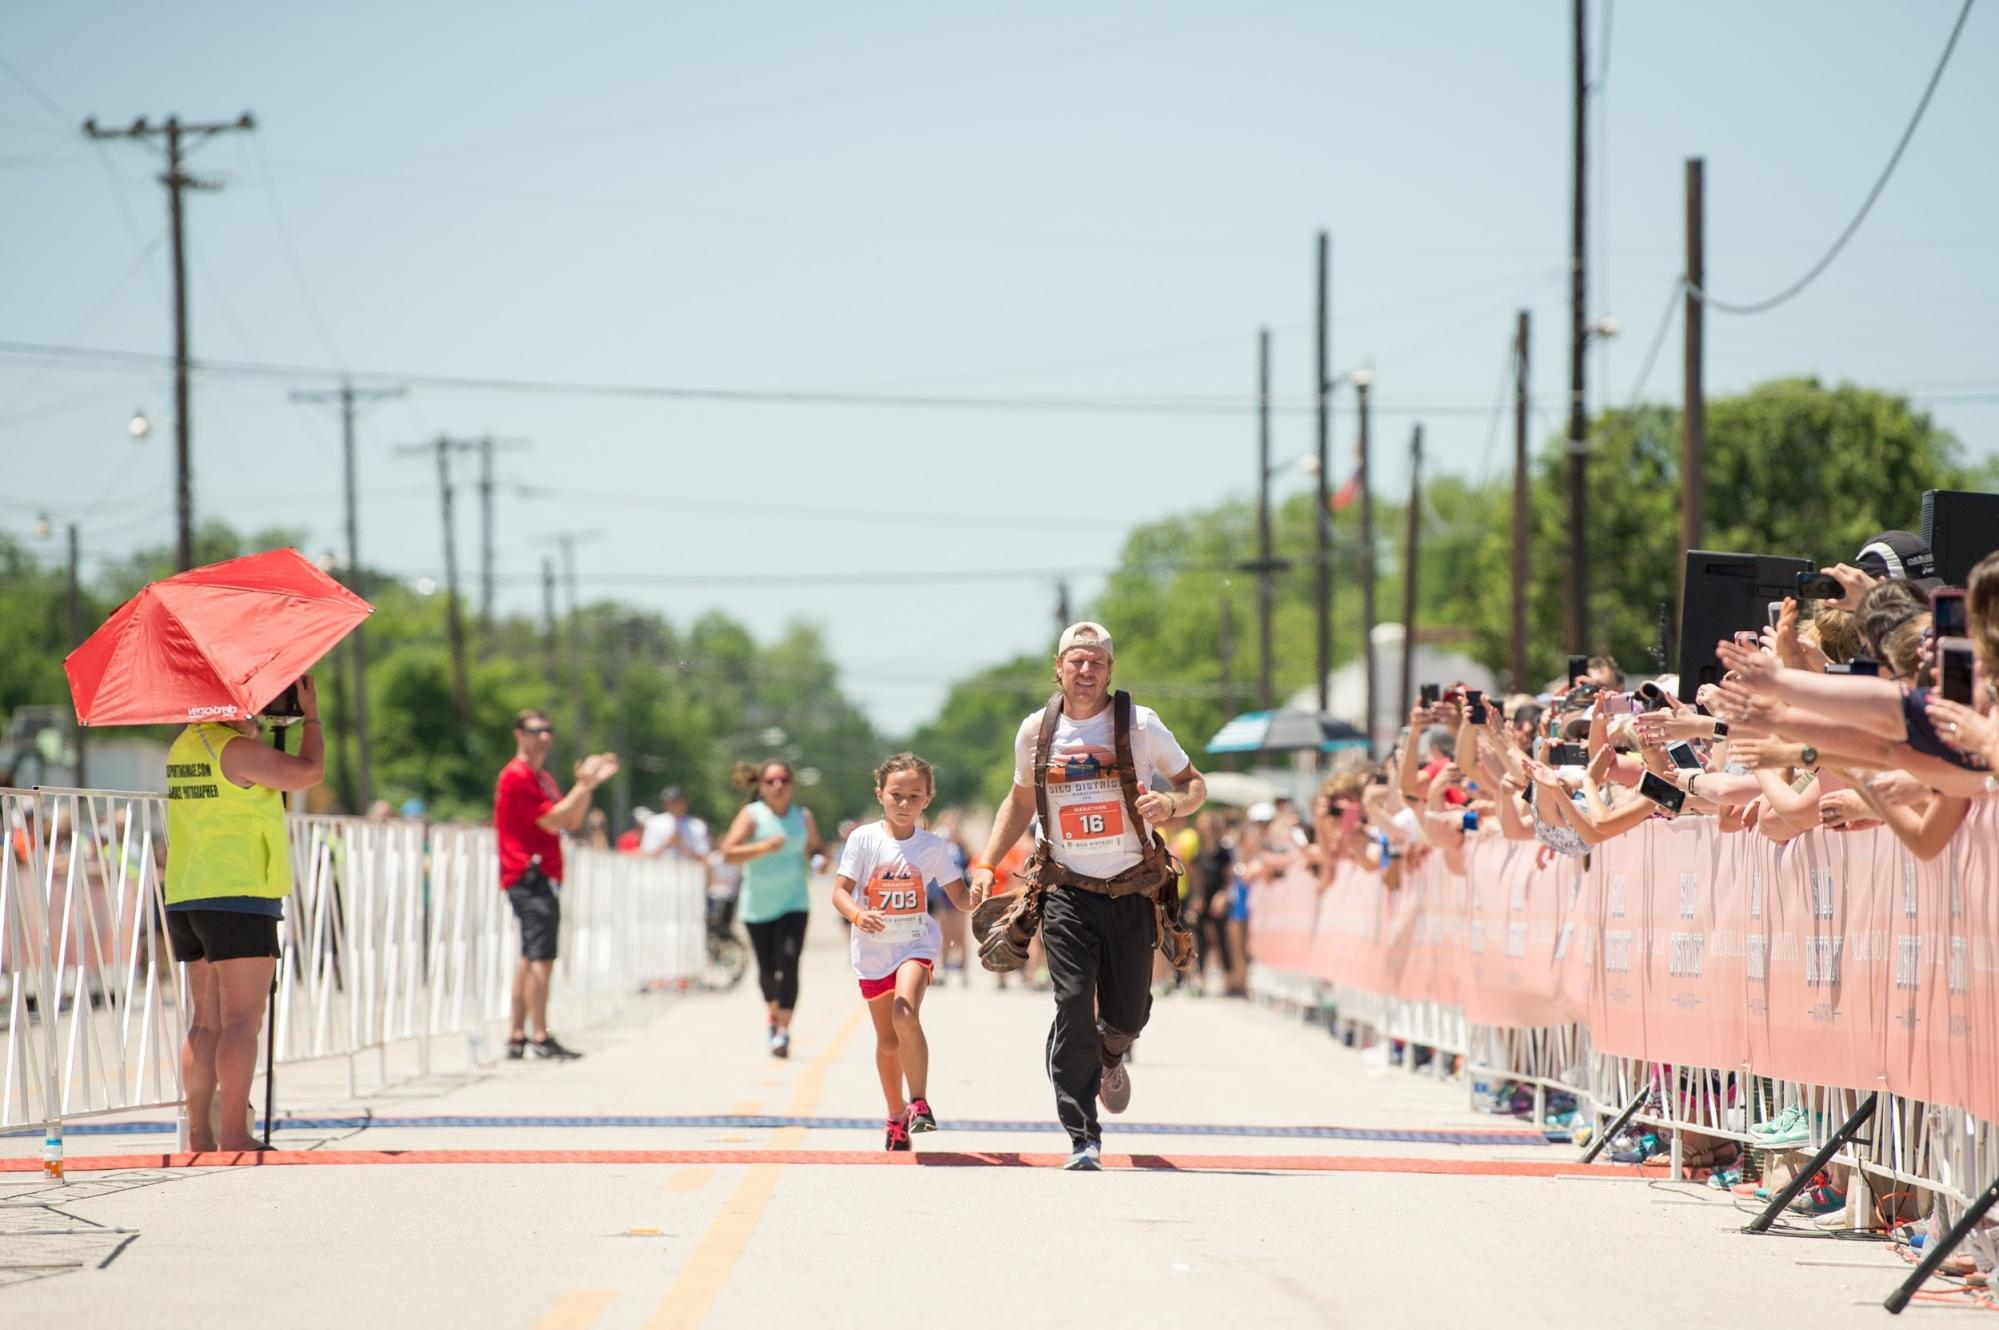 Silo-District-Marathon-Chip-Gaines-Running-With-Family-Daughter-Finish-Line-Brave-Like-Gabe-Waco